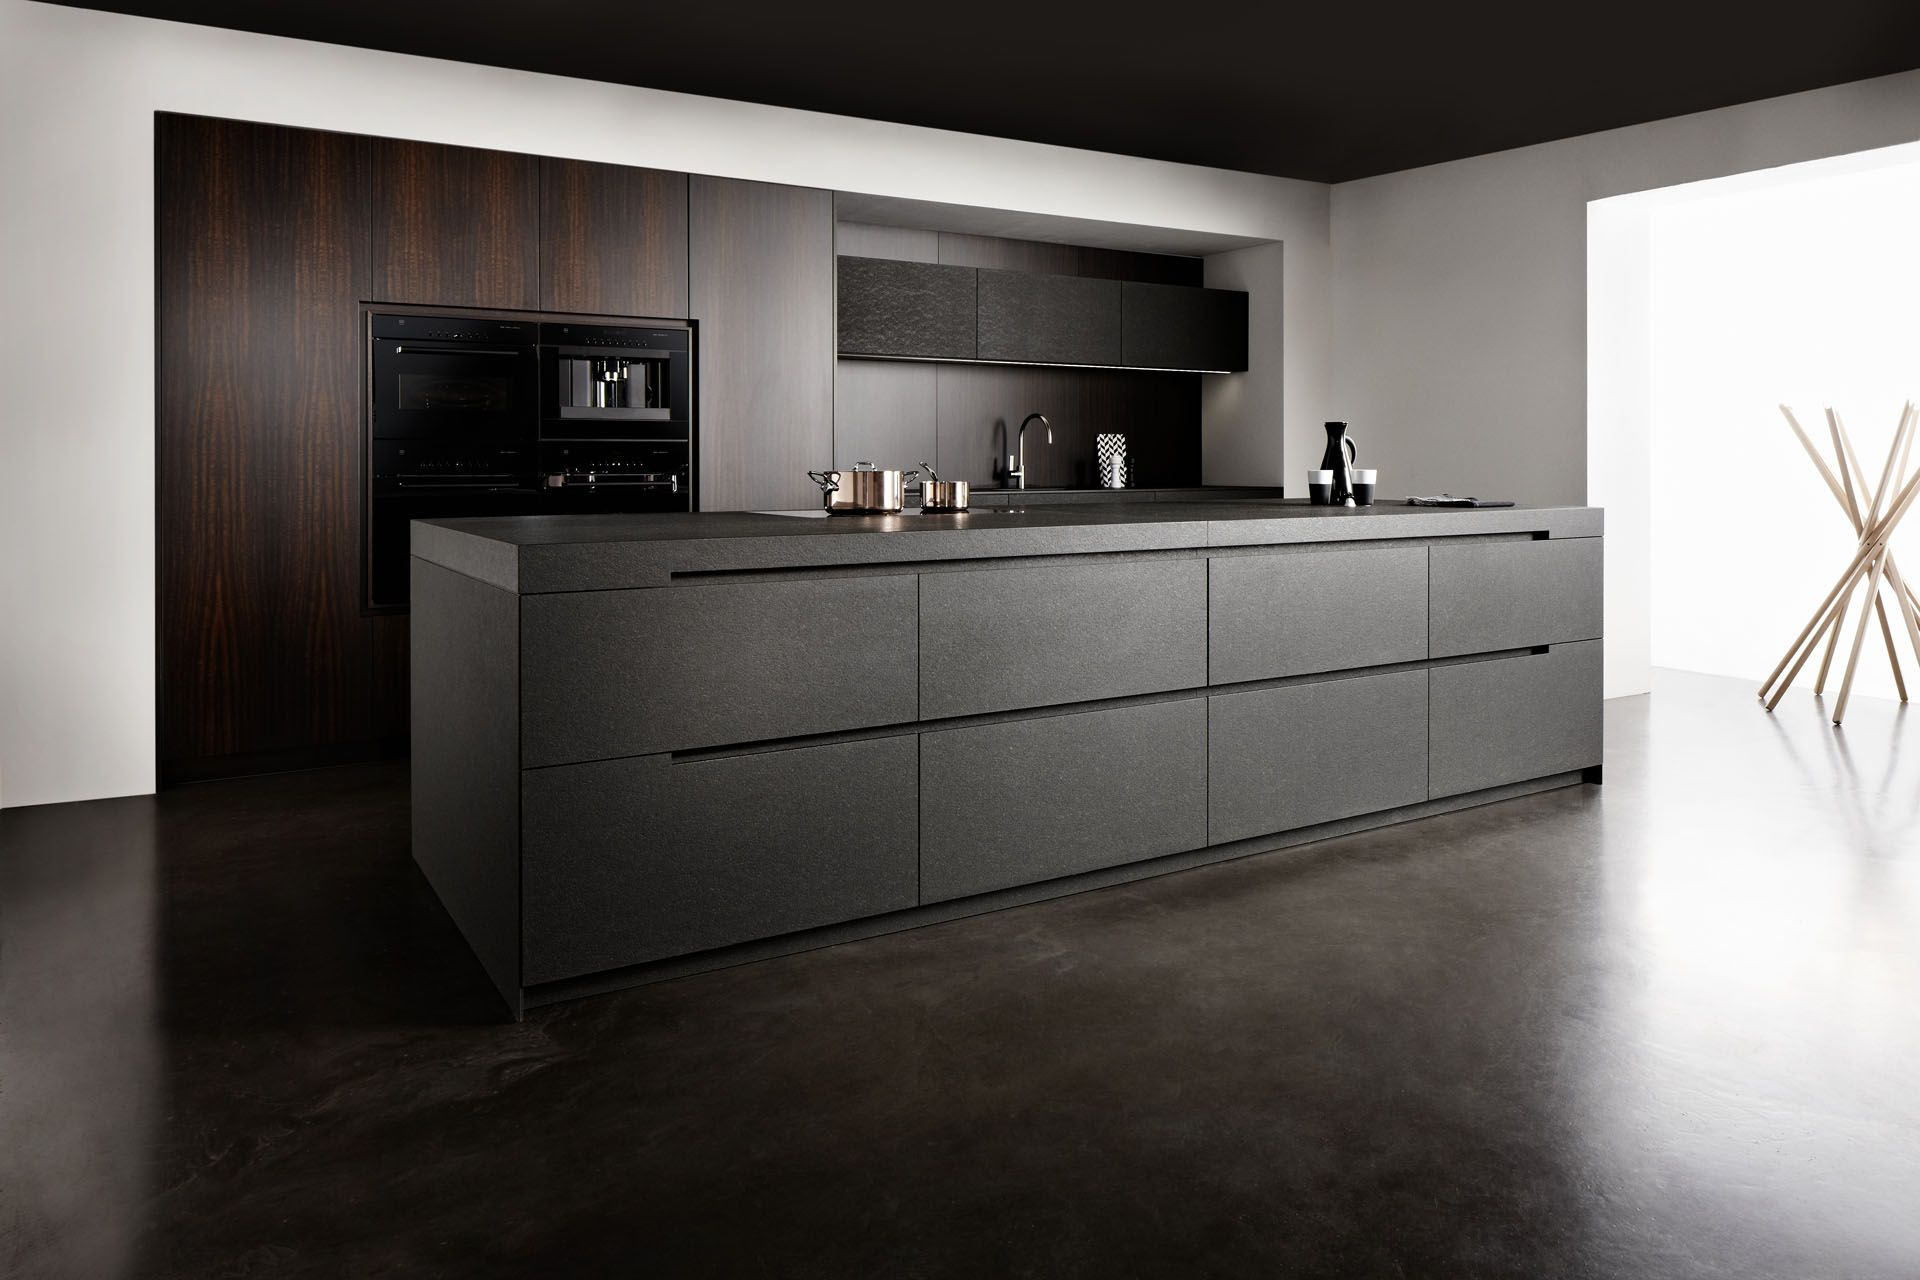 Discover All The Information About The Product Contemporary Kitchen /  Wooden / Stone / Island NERO ASSOLUTO   Eggersmann Küchen GmbH U0026 Co.